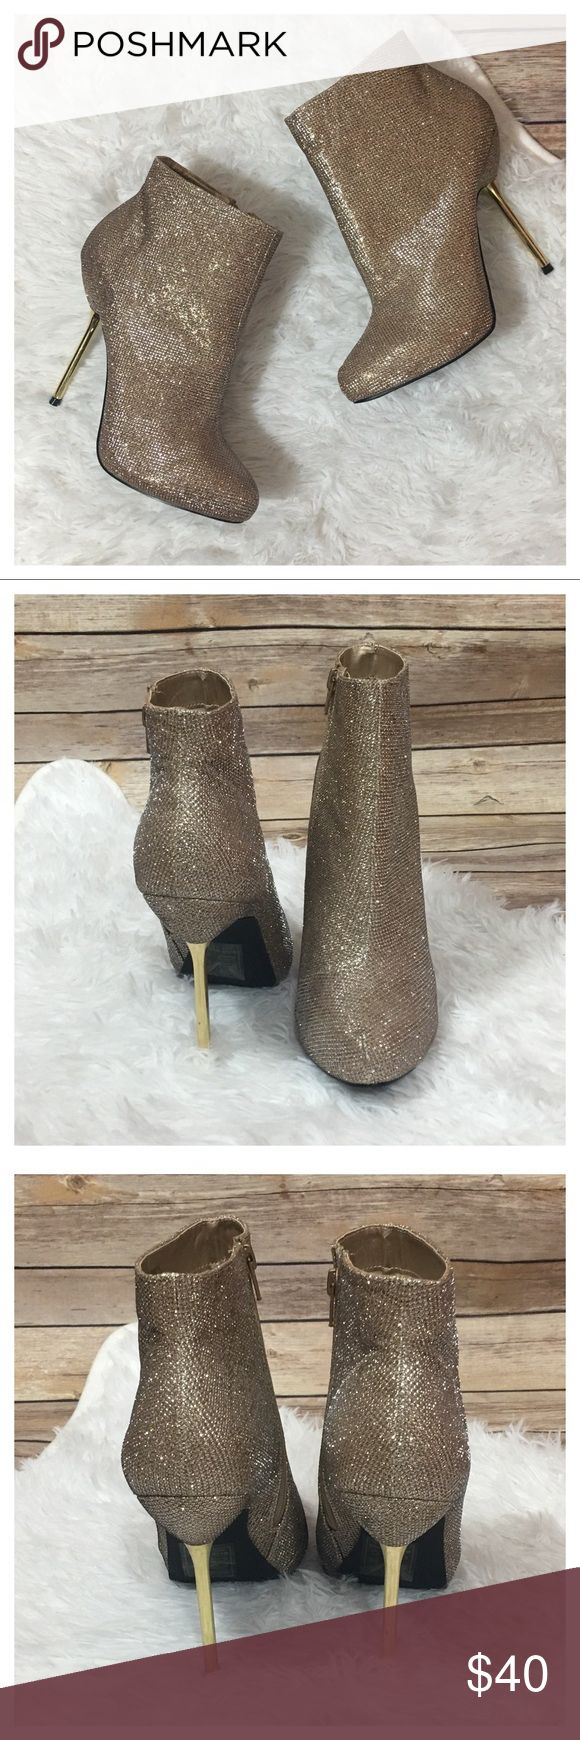 """NWOB Shoe Dazzle Elisabeth Sparkle Pin-Heel Bootie NWOB Shoe Dazzle Elisabeth Sparkle Pin-Heel Bootie - Champagne  This pin-Heel bootie is perfect for holiday parties.   - Size 9.5 - No box - Never worn. Bottoms maybe slightly discolored from shelves. - Gold Heel - Side Zipper - Approximate 5"""" outside heel height   No TRADES. Please use offer button to negotiate. Thanks! Shoe Dazzle Shoes Ankle Boots & Booties"""